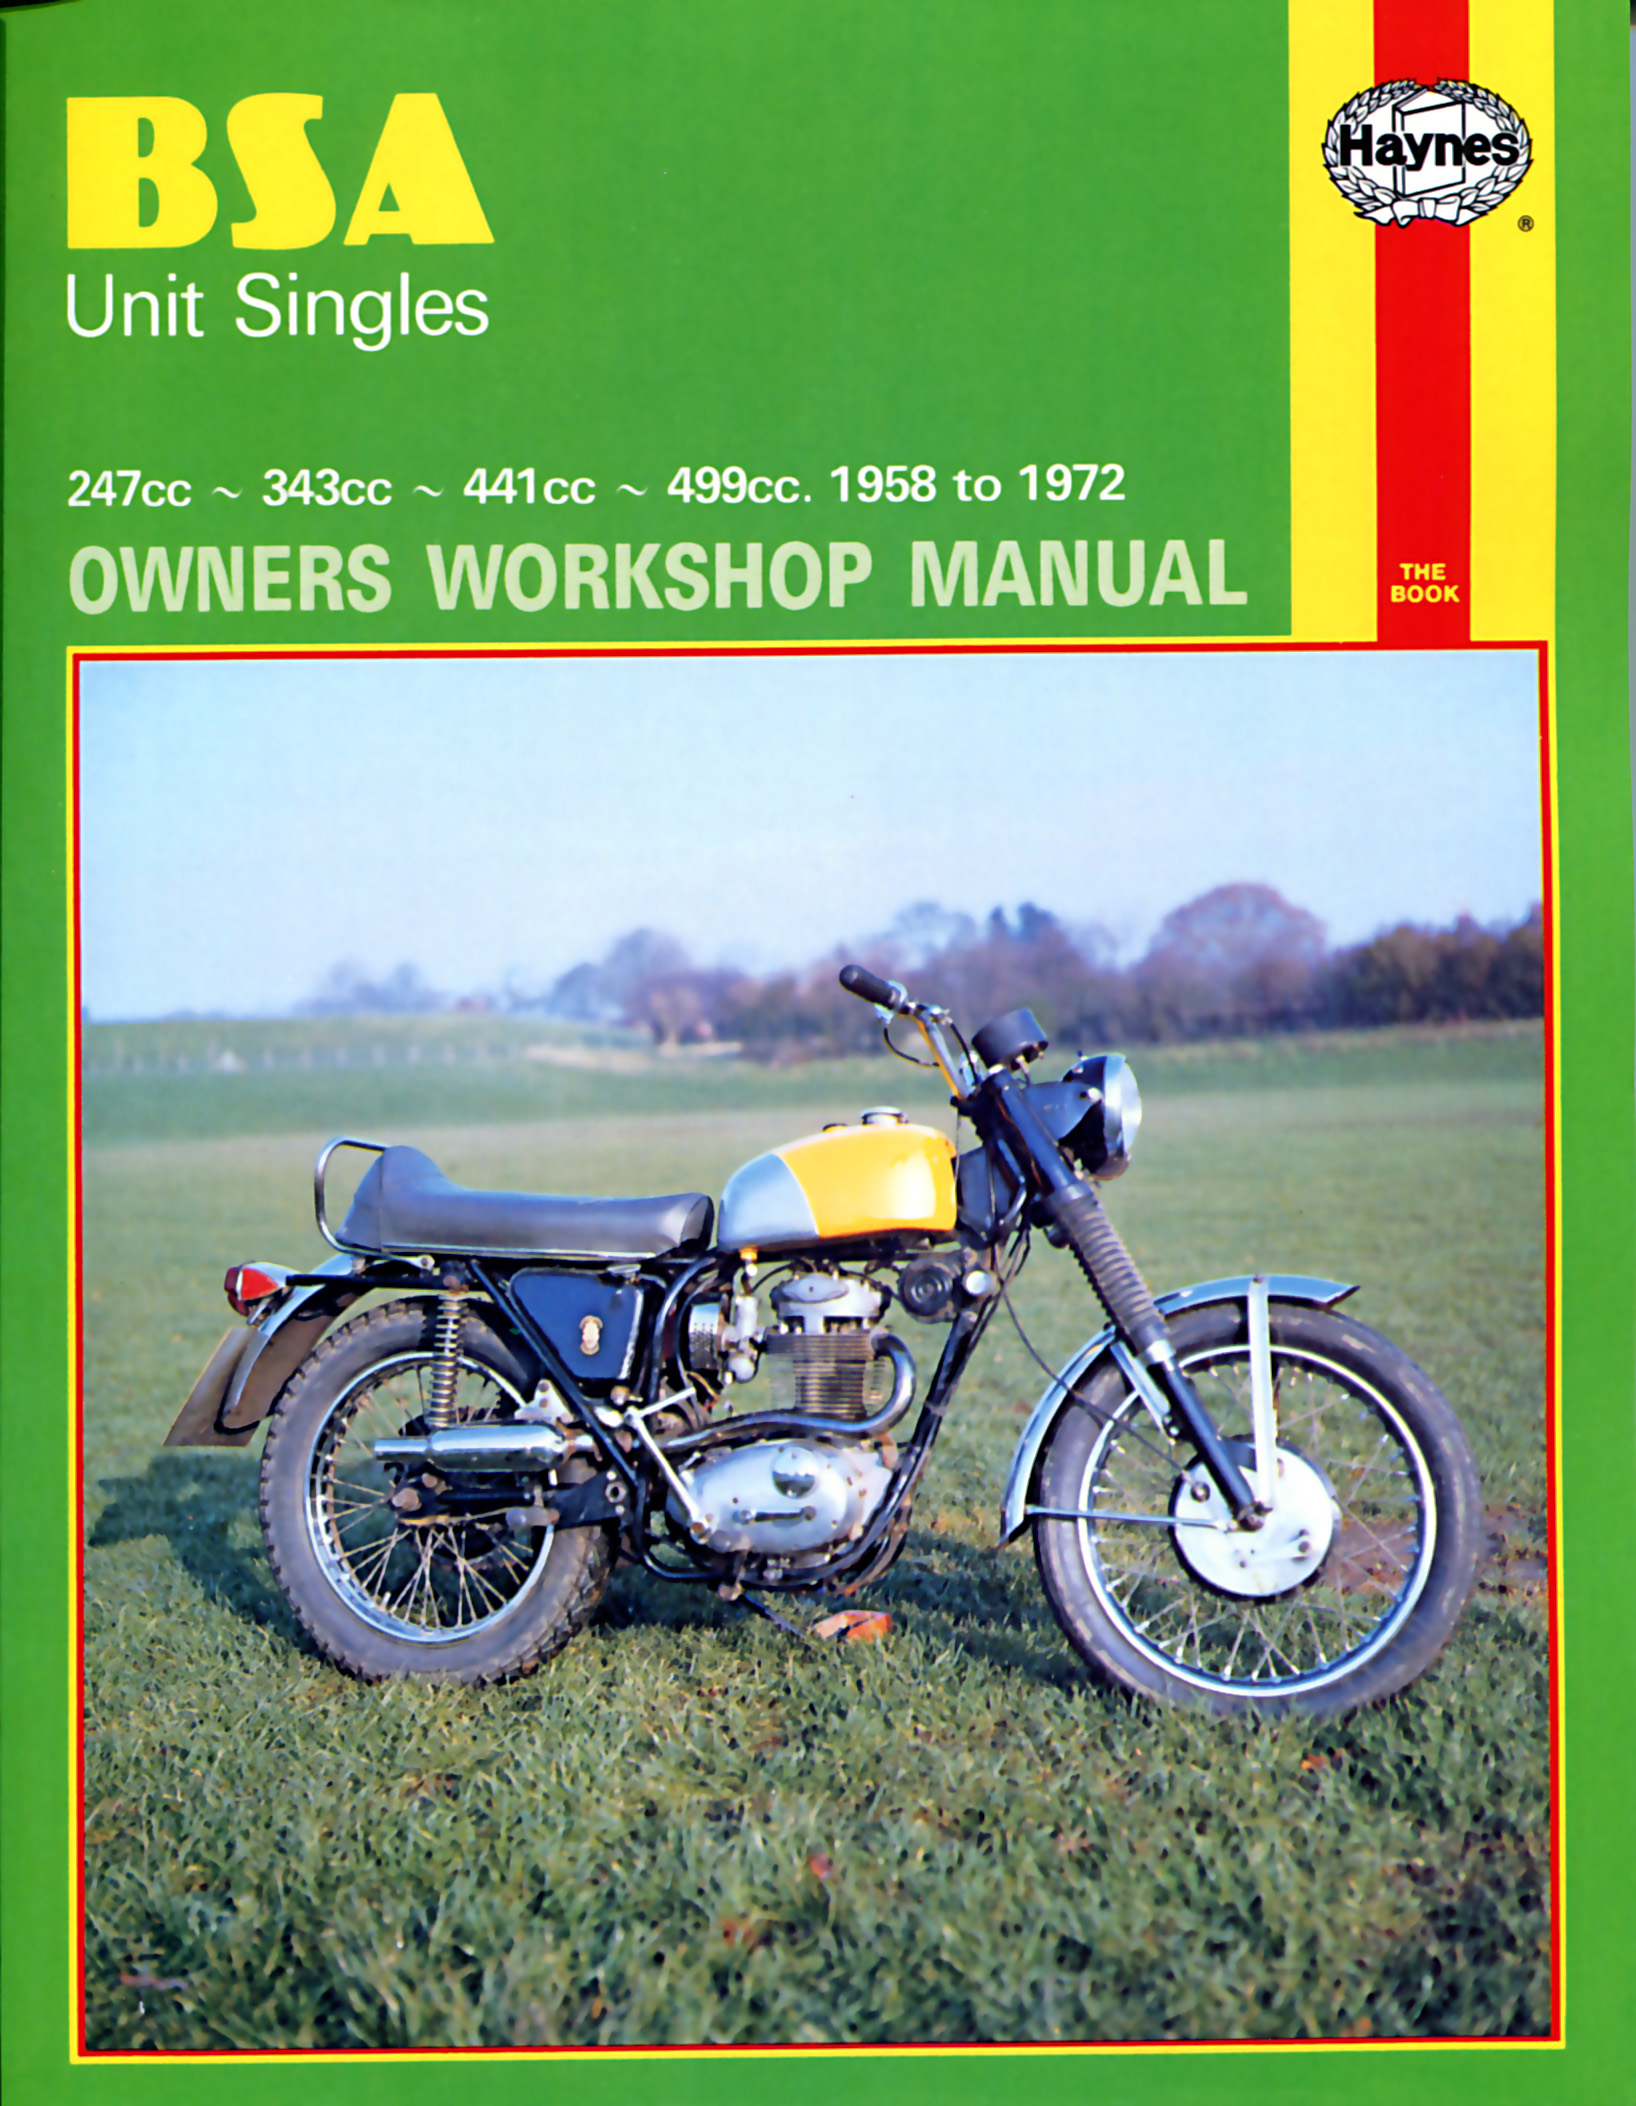 BSA Unit Singles 1958 - 1972 Owners Workshop Manual 127